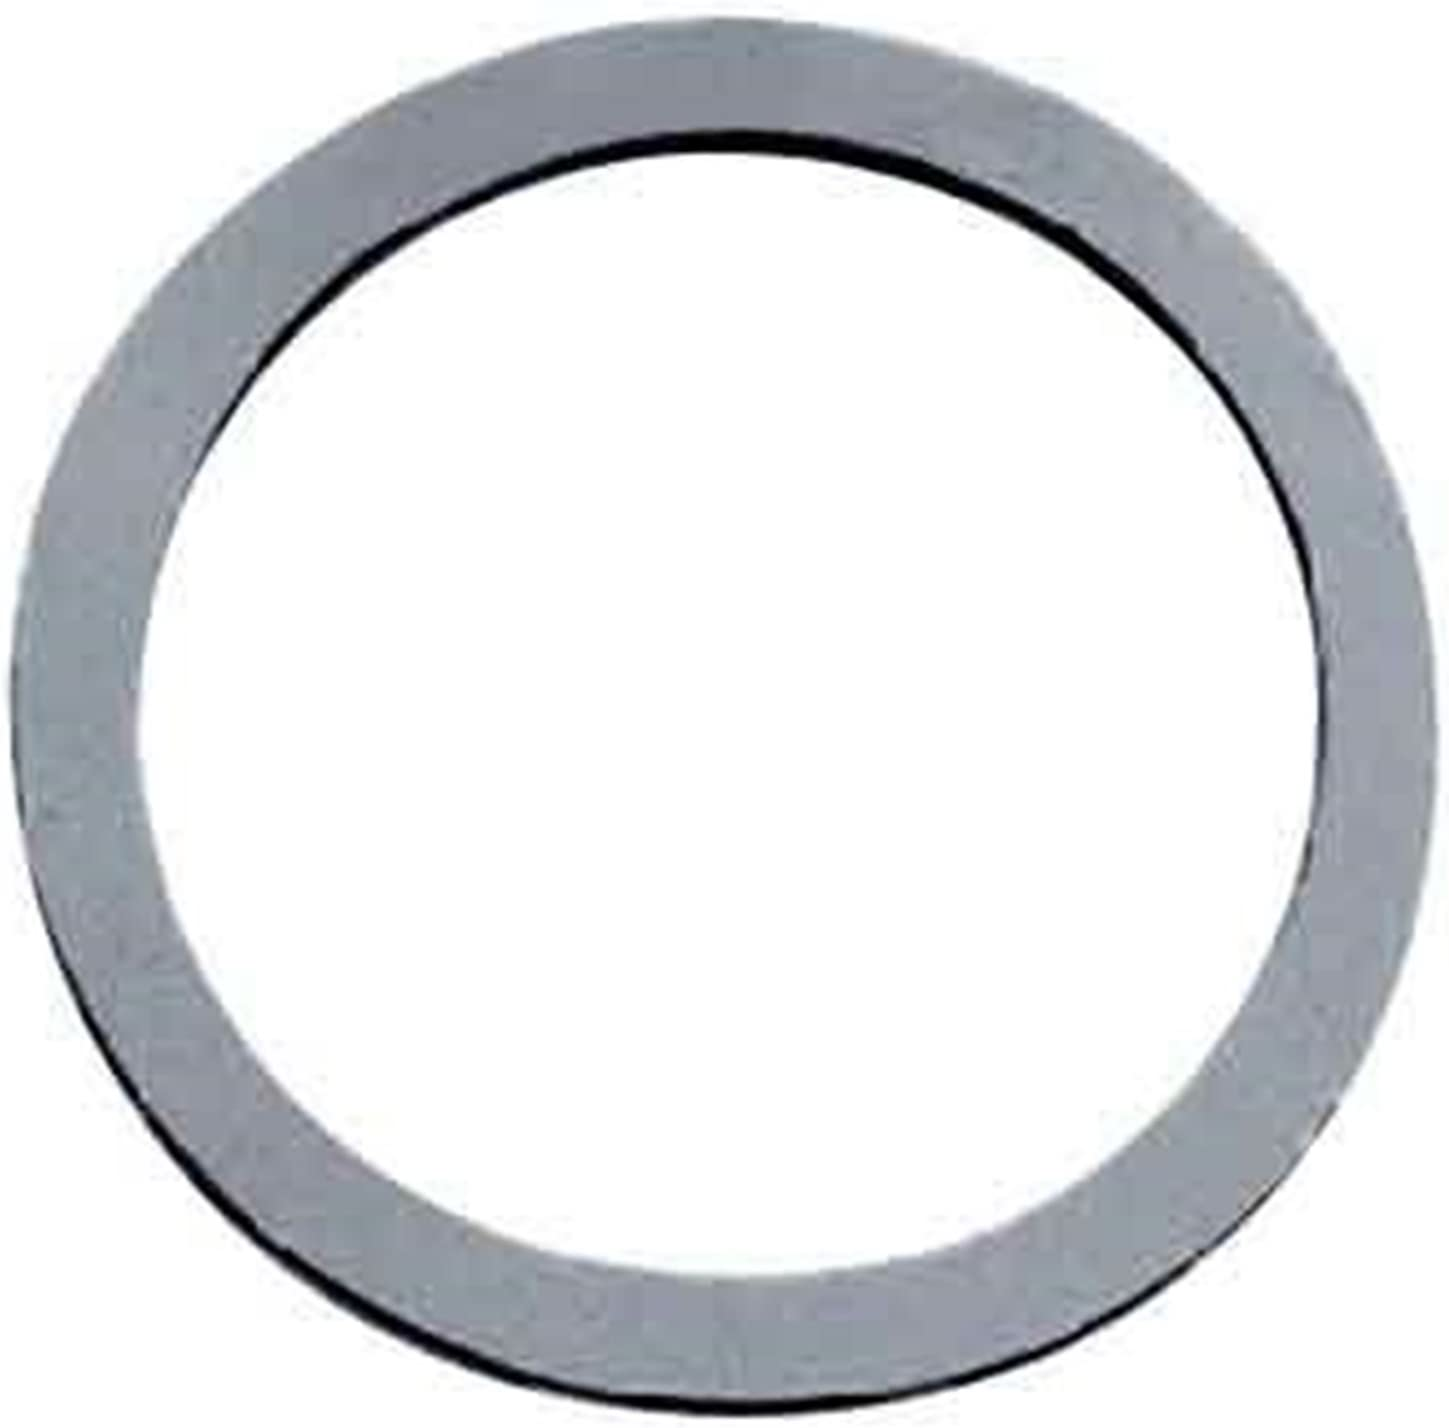 4AN Replacement Crushwashers Aeroquip FCM3513 Aluminum Pack of 5